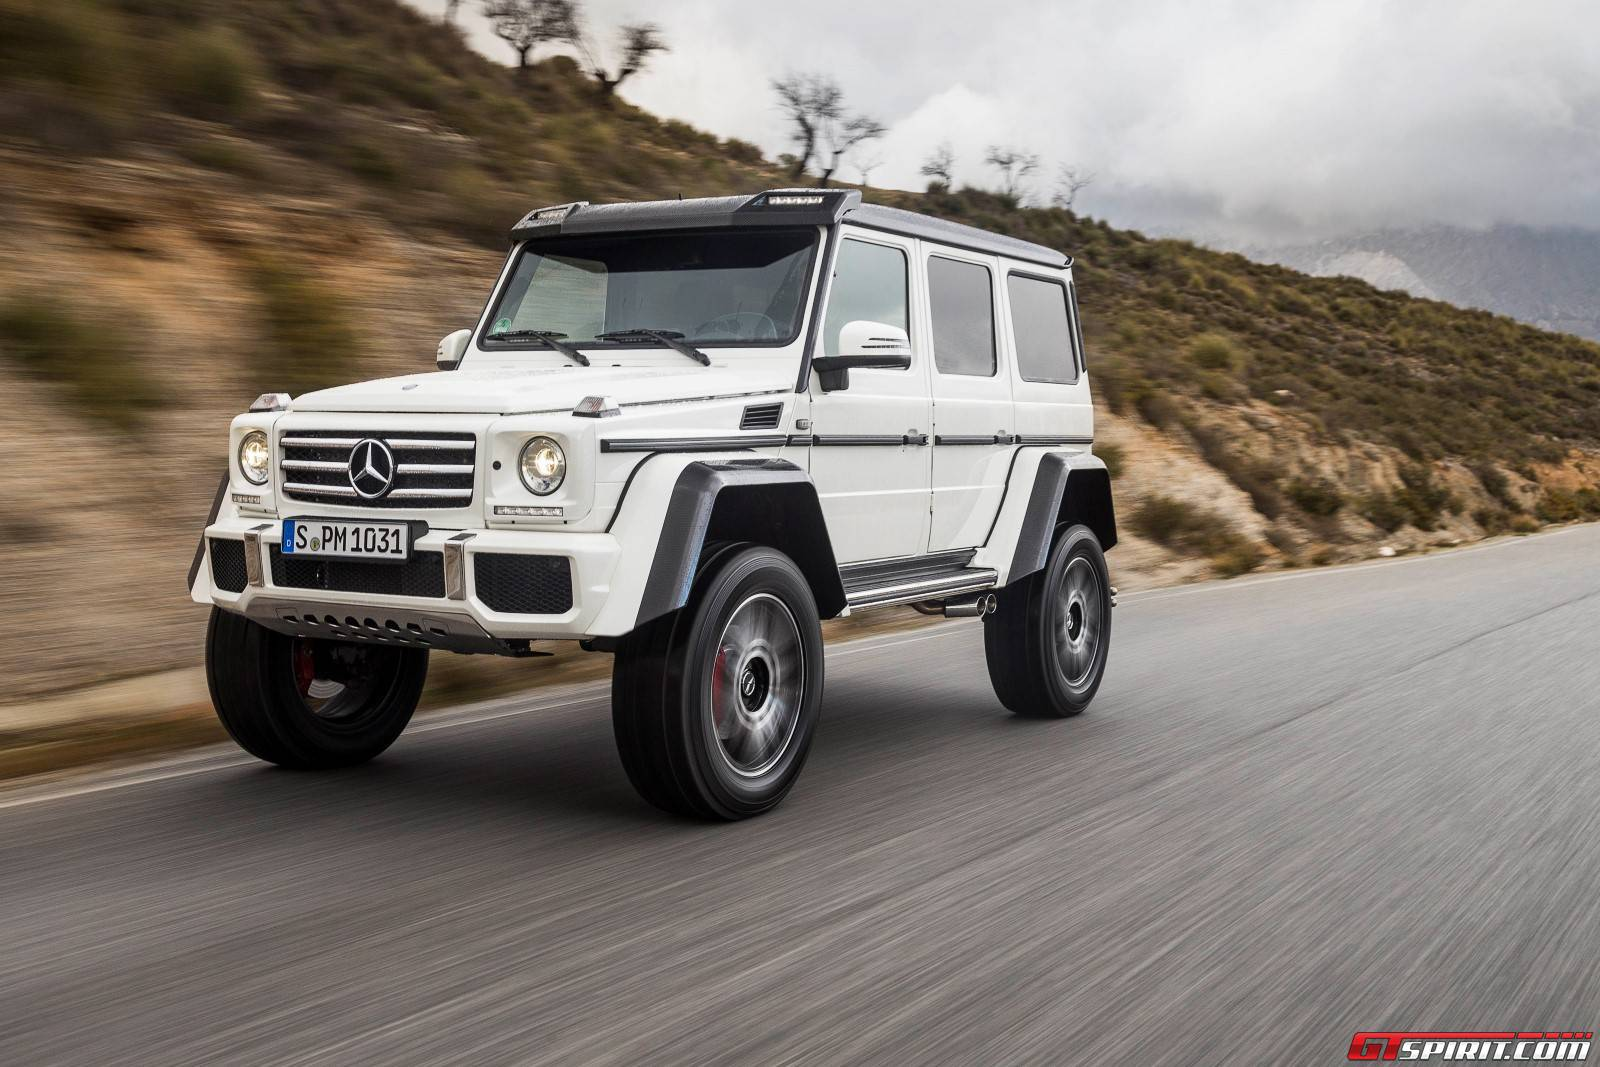 Mercedes benz g500 4x4 square mercedes benz for Mercedes benz 4x4 g class